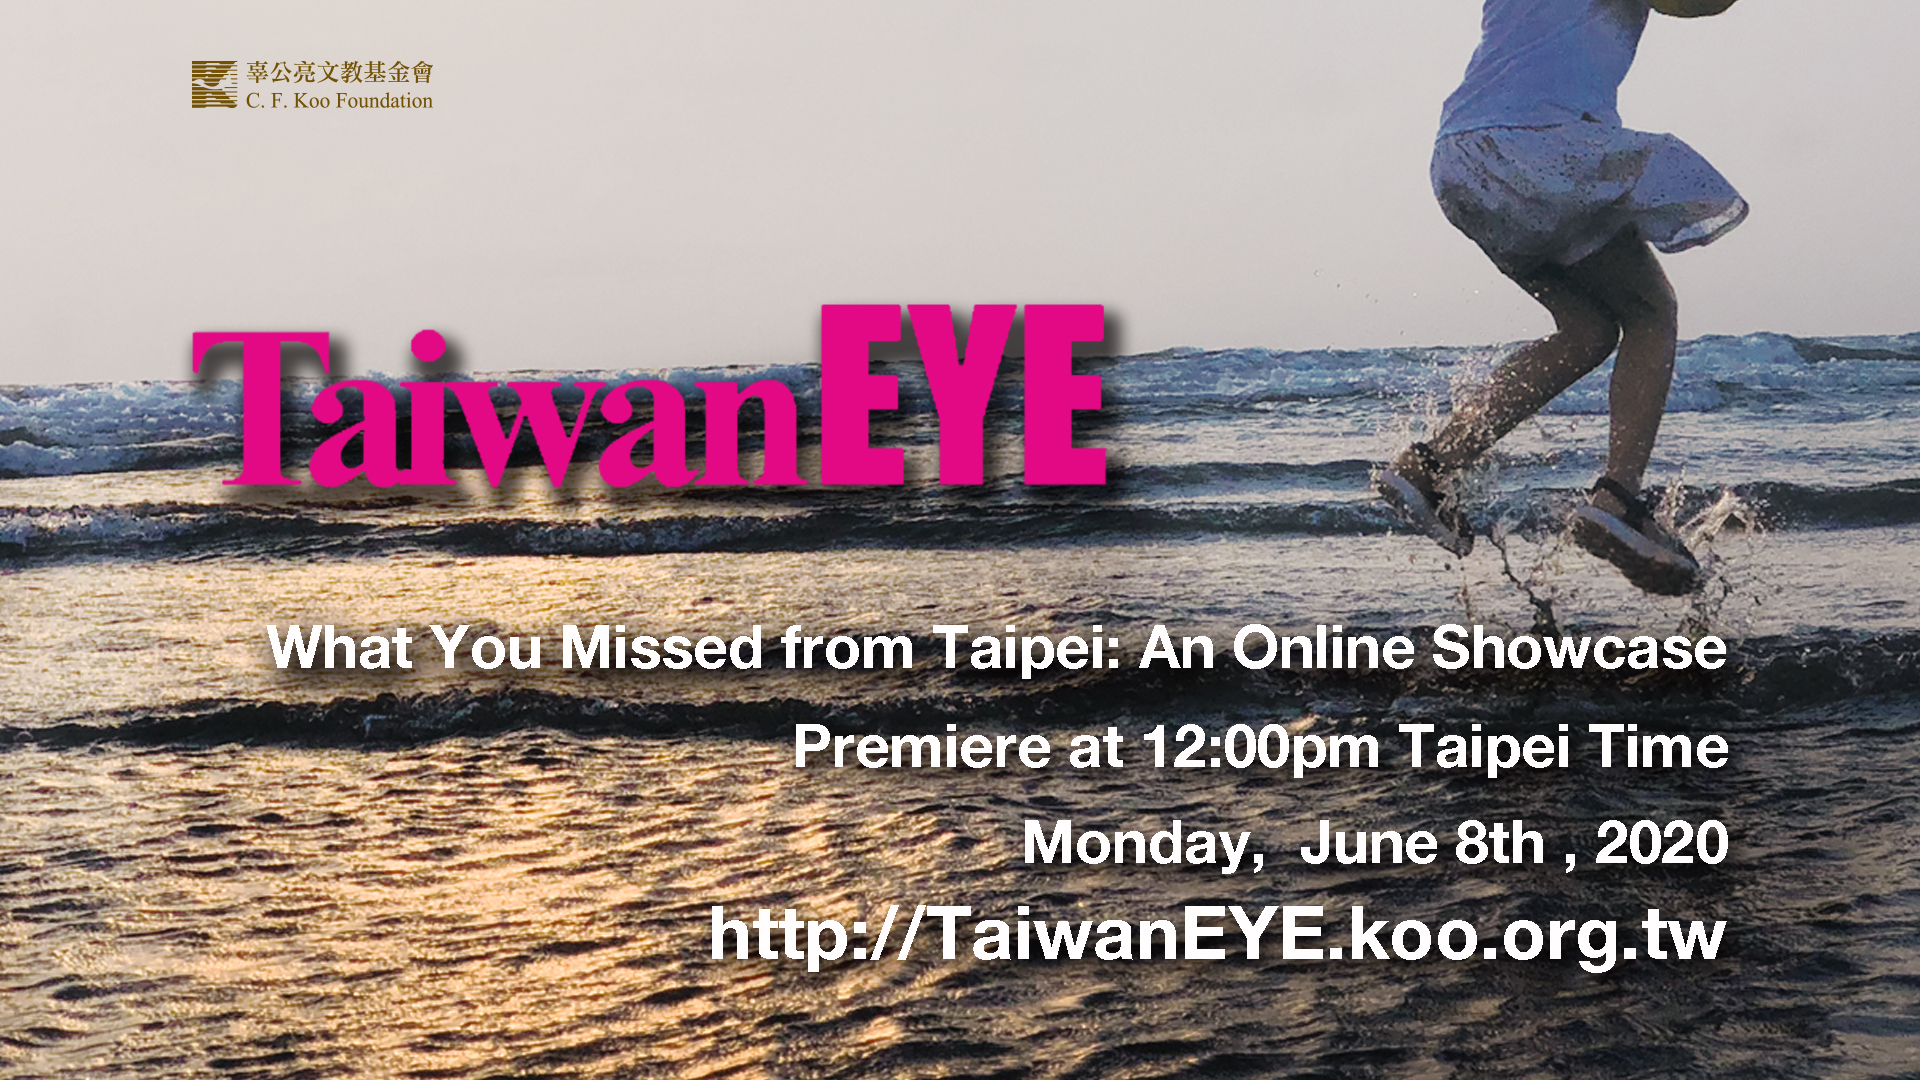 Online showcase of Taiwanese performances to go live on June 8